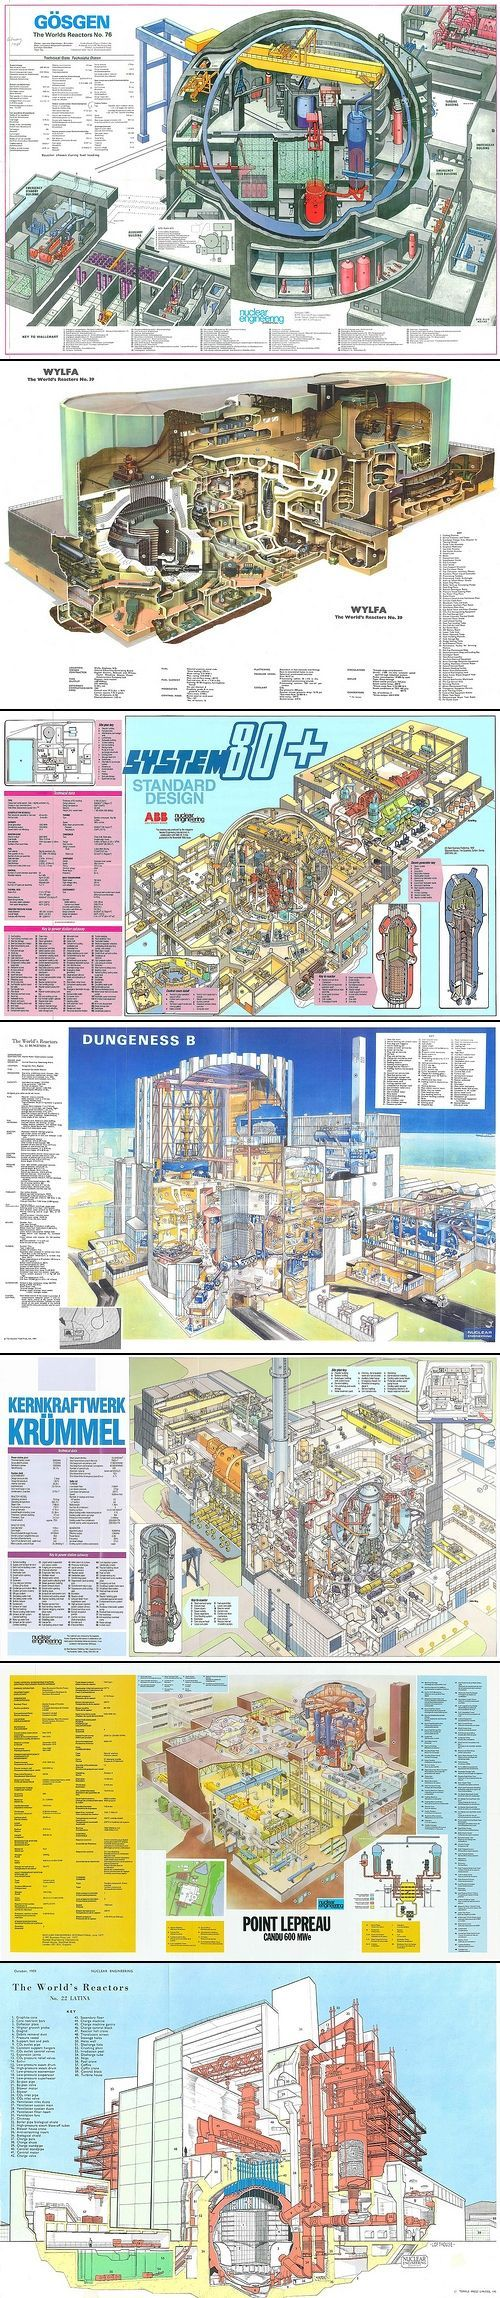 Douglas Point Bwr6 Design Of Nuclear Power Plants T Plant Schematic Minecraft Reactor Wall Charts